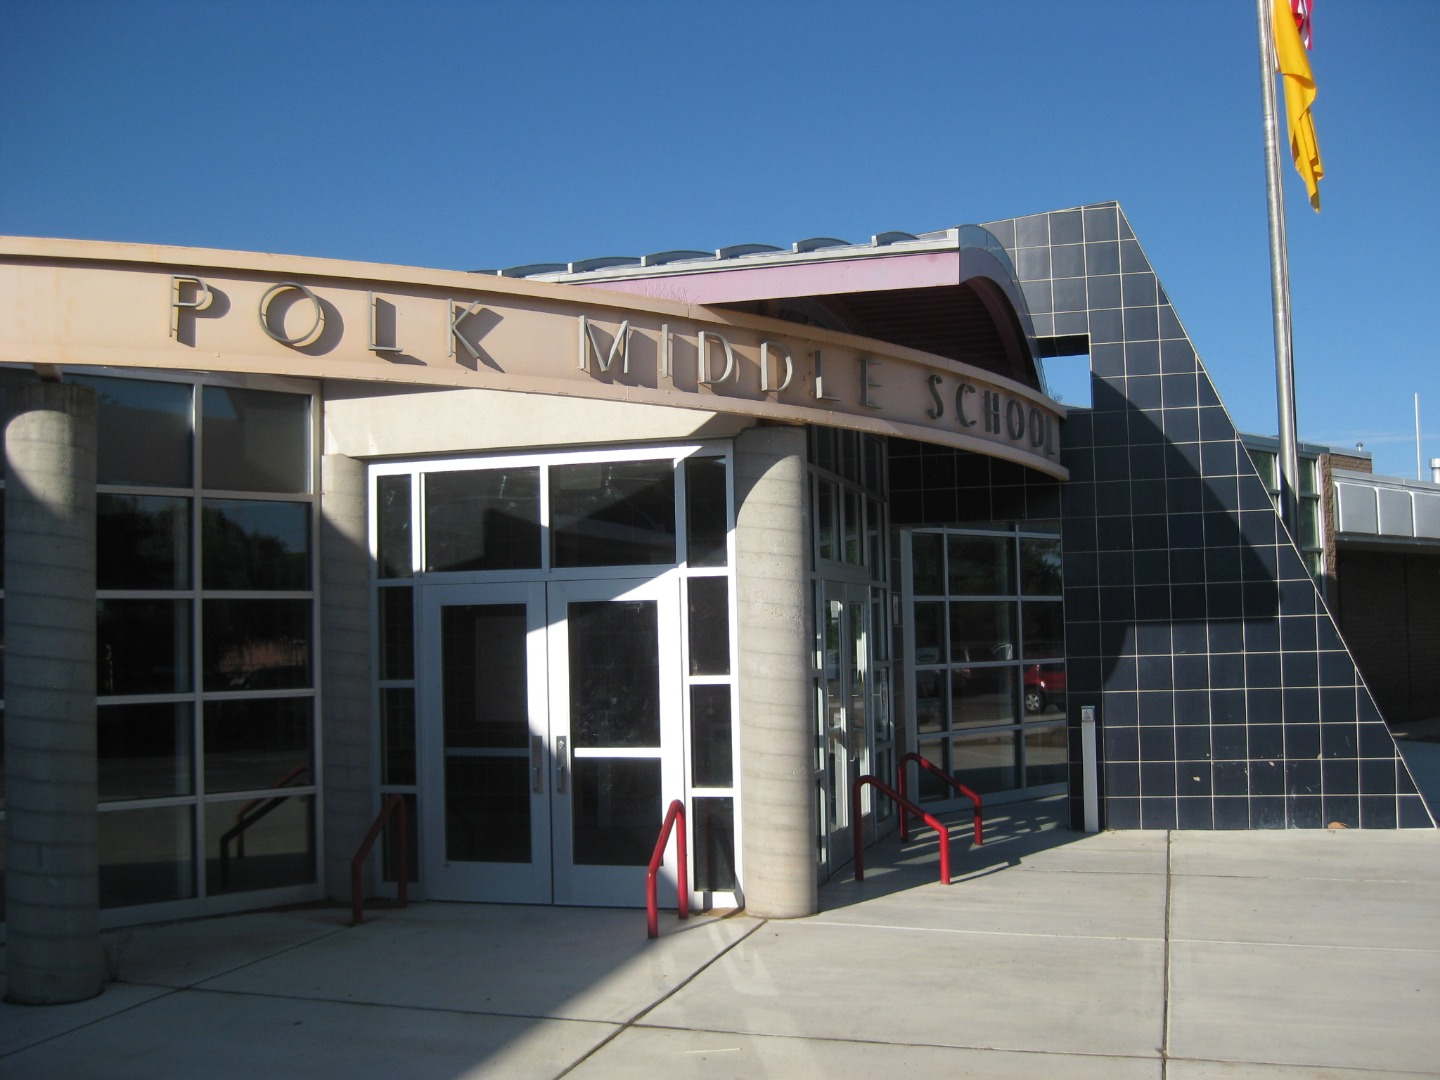 front of Polk Middle School